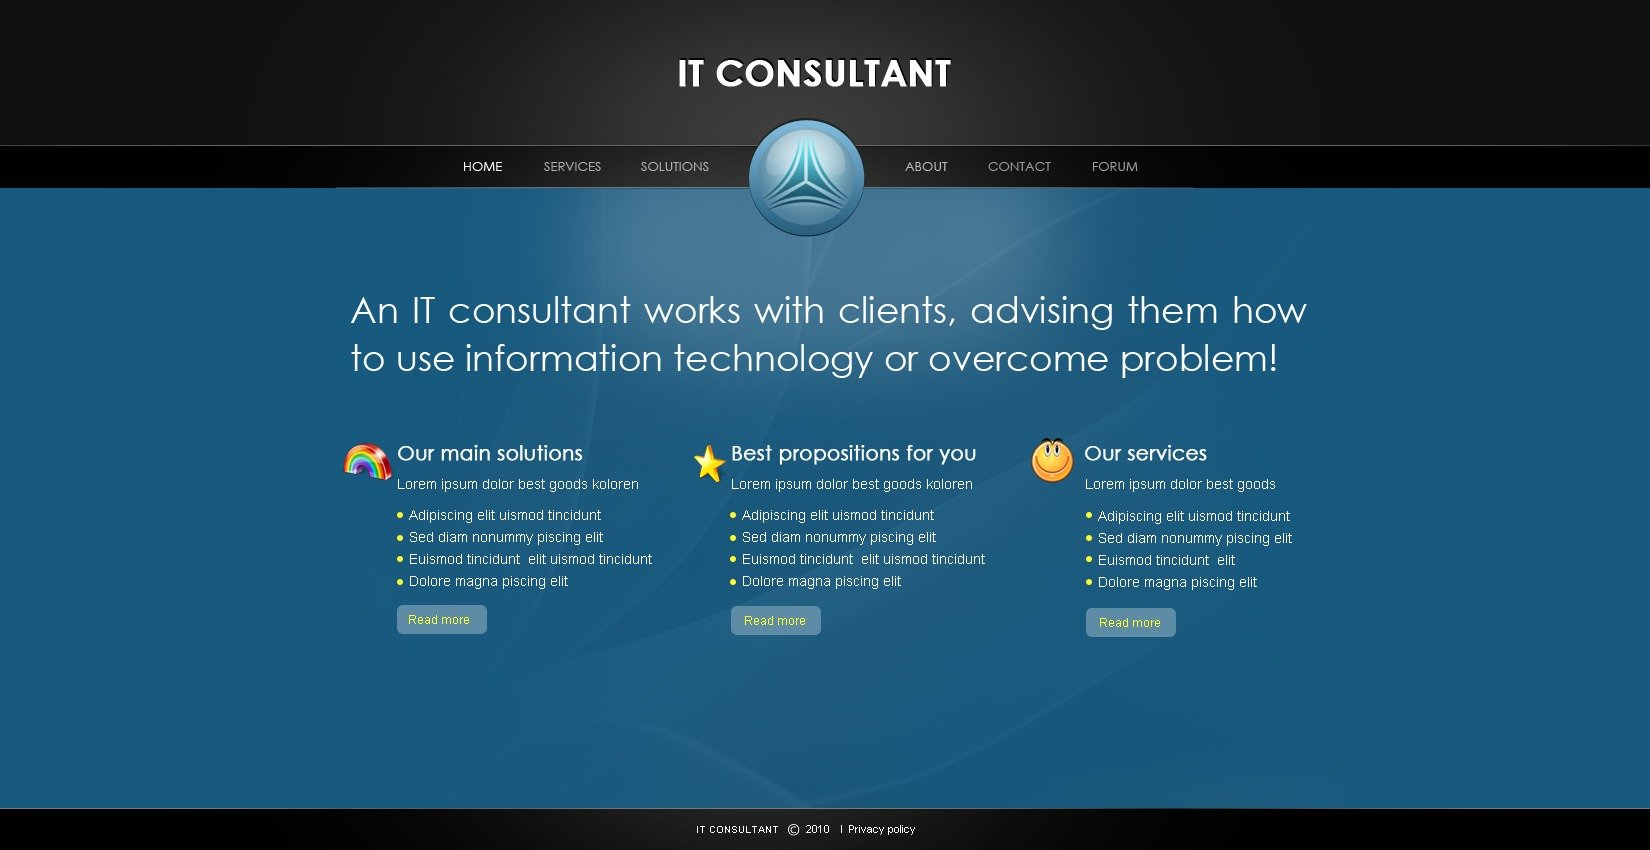 The IT Consultant Support PSD Design 54341, one of the best PSD templates of its kind (business, communications, most popular, wide, jquery), also known as IT consultant support PSD template, network PSD template, communications company PSD template, communication PSD template, information PSD template, informational PSD template, technologies PSD template, connection PSD template, internet PSD template, mail PSD template, www PSD template, web contact PSD template, transfer and related with IT consultant support, network, communications company, communication, information, informational, technologies, connection, internet, mail, www, web contact, transfer, etc.